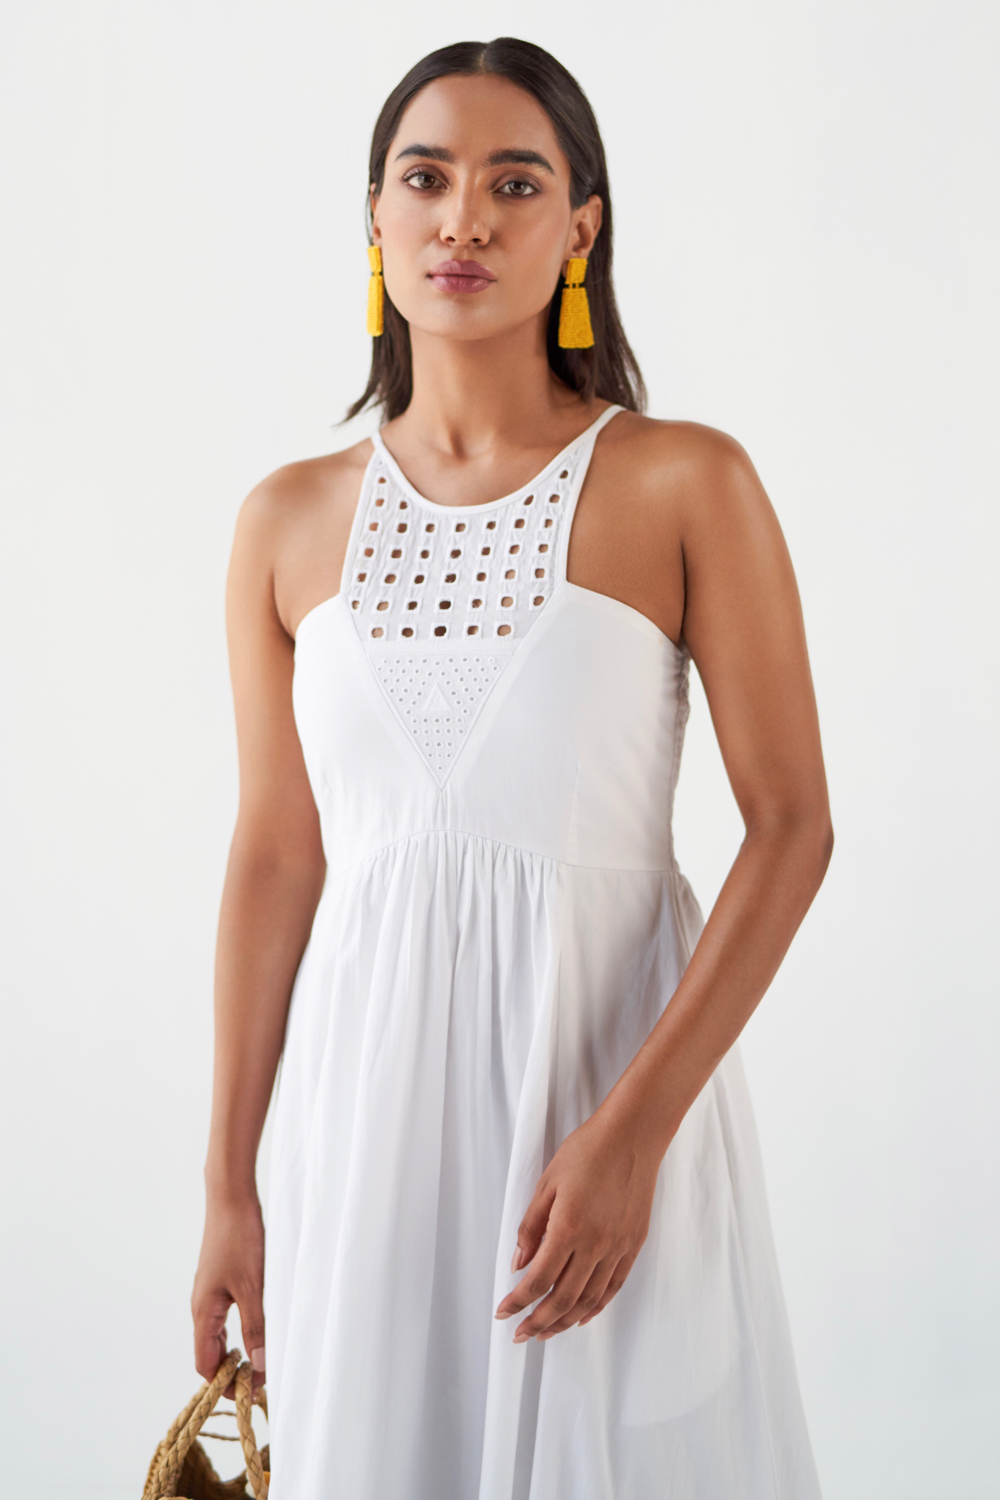 MARRAKESH WHITE FINE COTTON FABRIC ANKLE LENGTH SLEEVELESS DRESS WITH EMBROIDERED NECK AND POCKETS